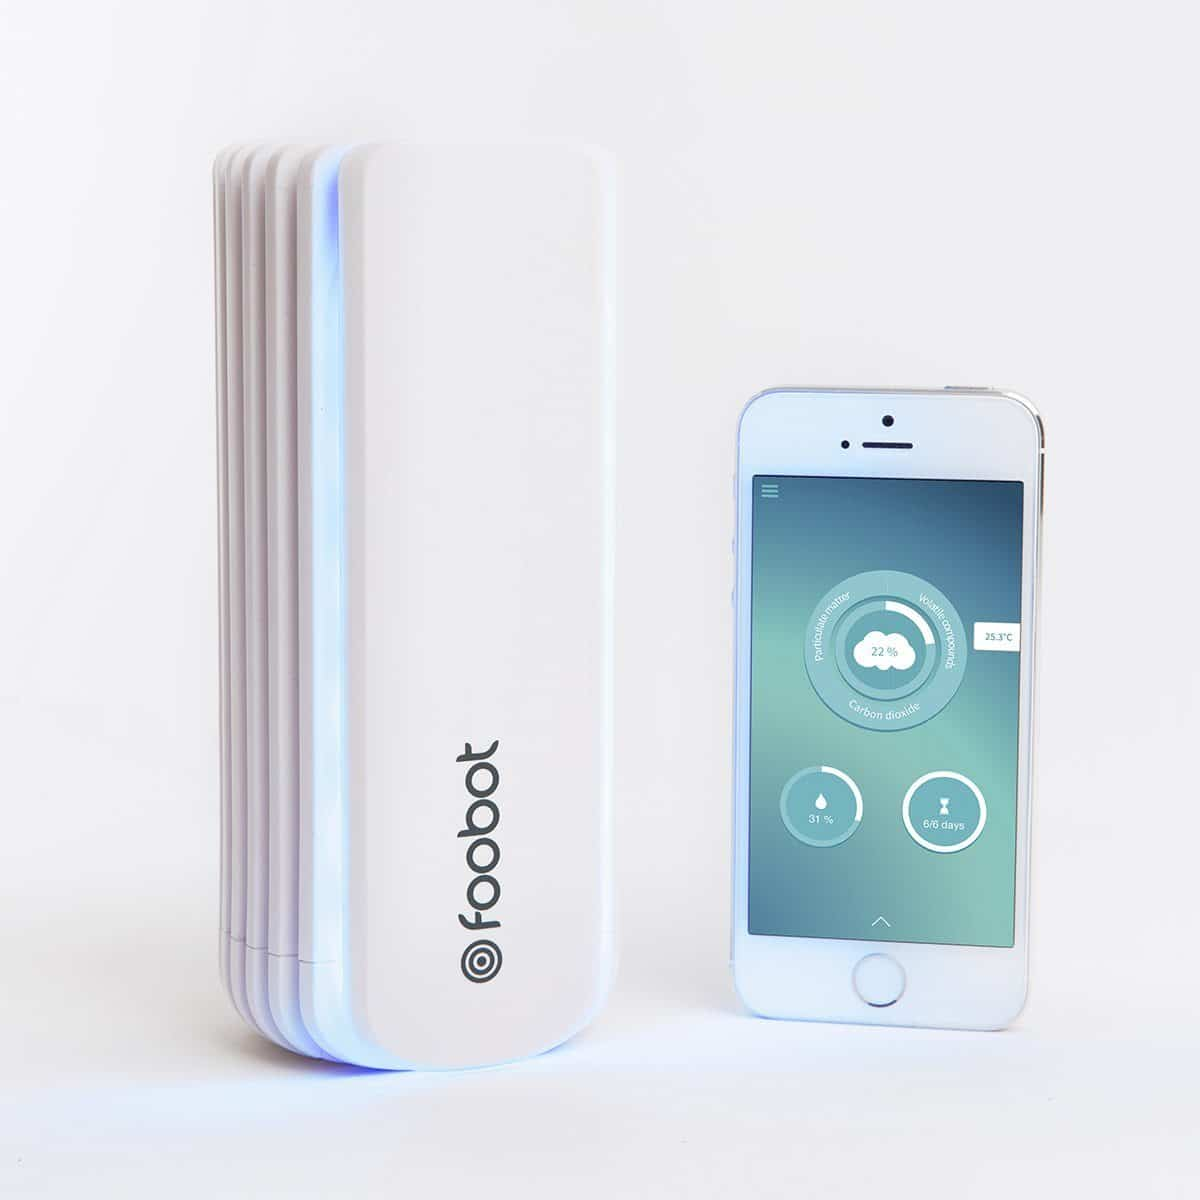 improve the air in your home with these smart gadgets 4 - Improve the air in your home with these smart gadgets